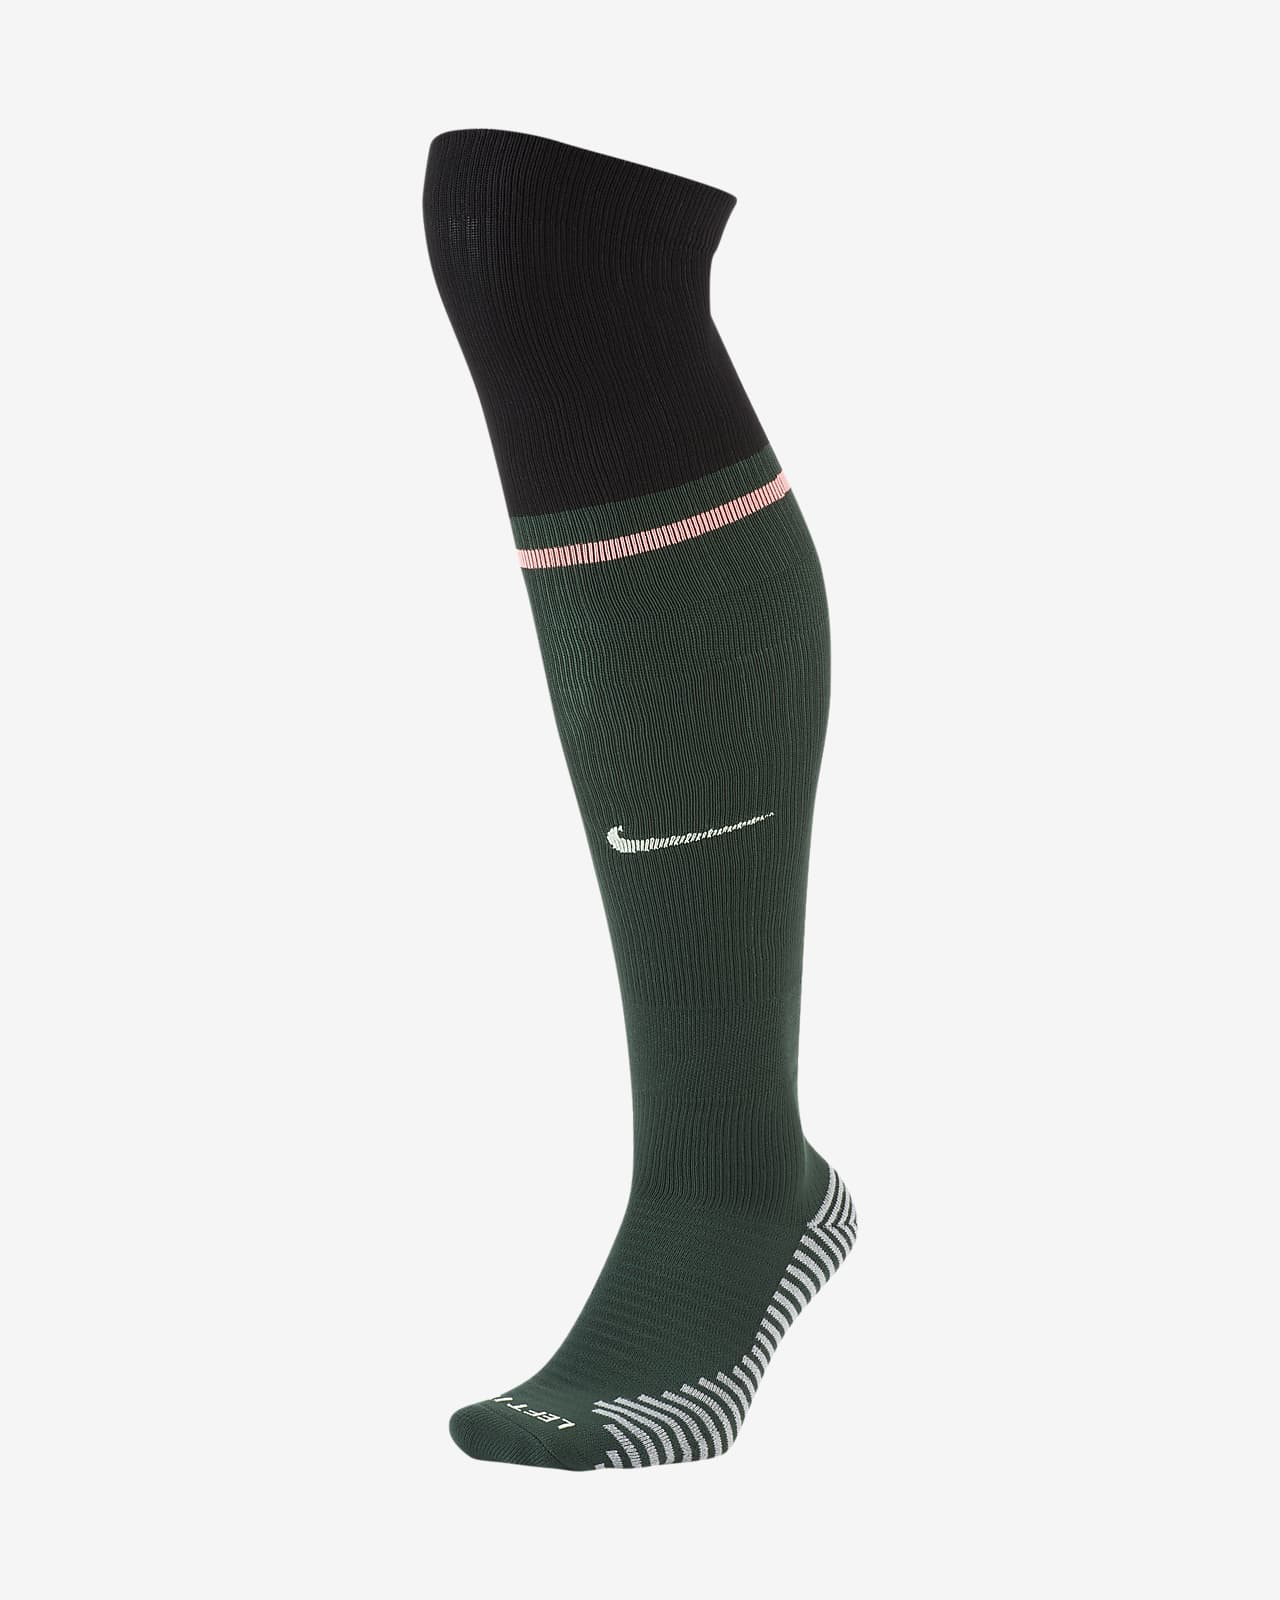 Tottenham Hotspur 2020/21 Stadium Away Over-the-Calf Football Socks